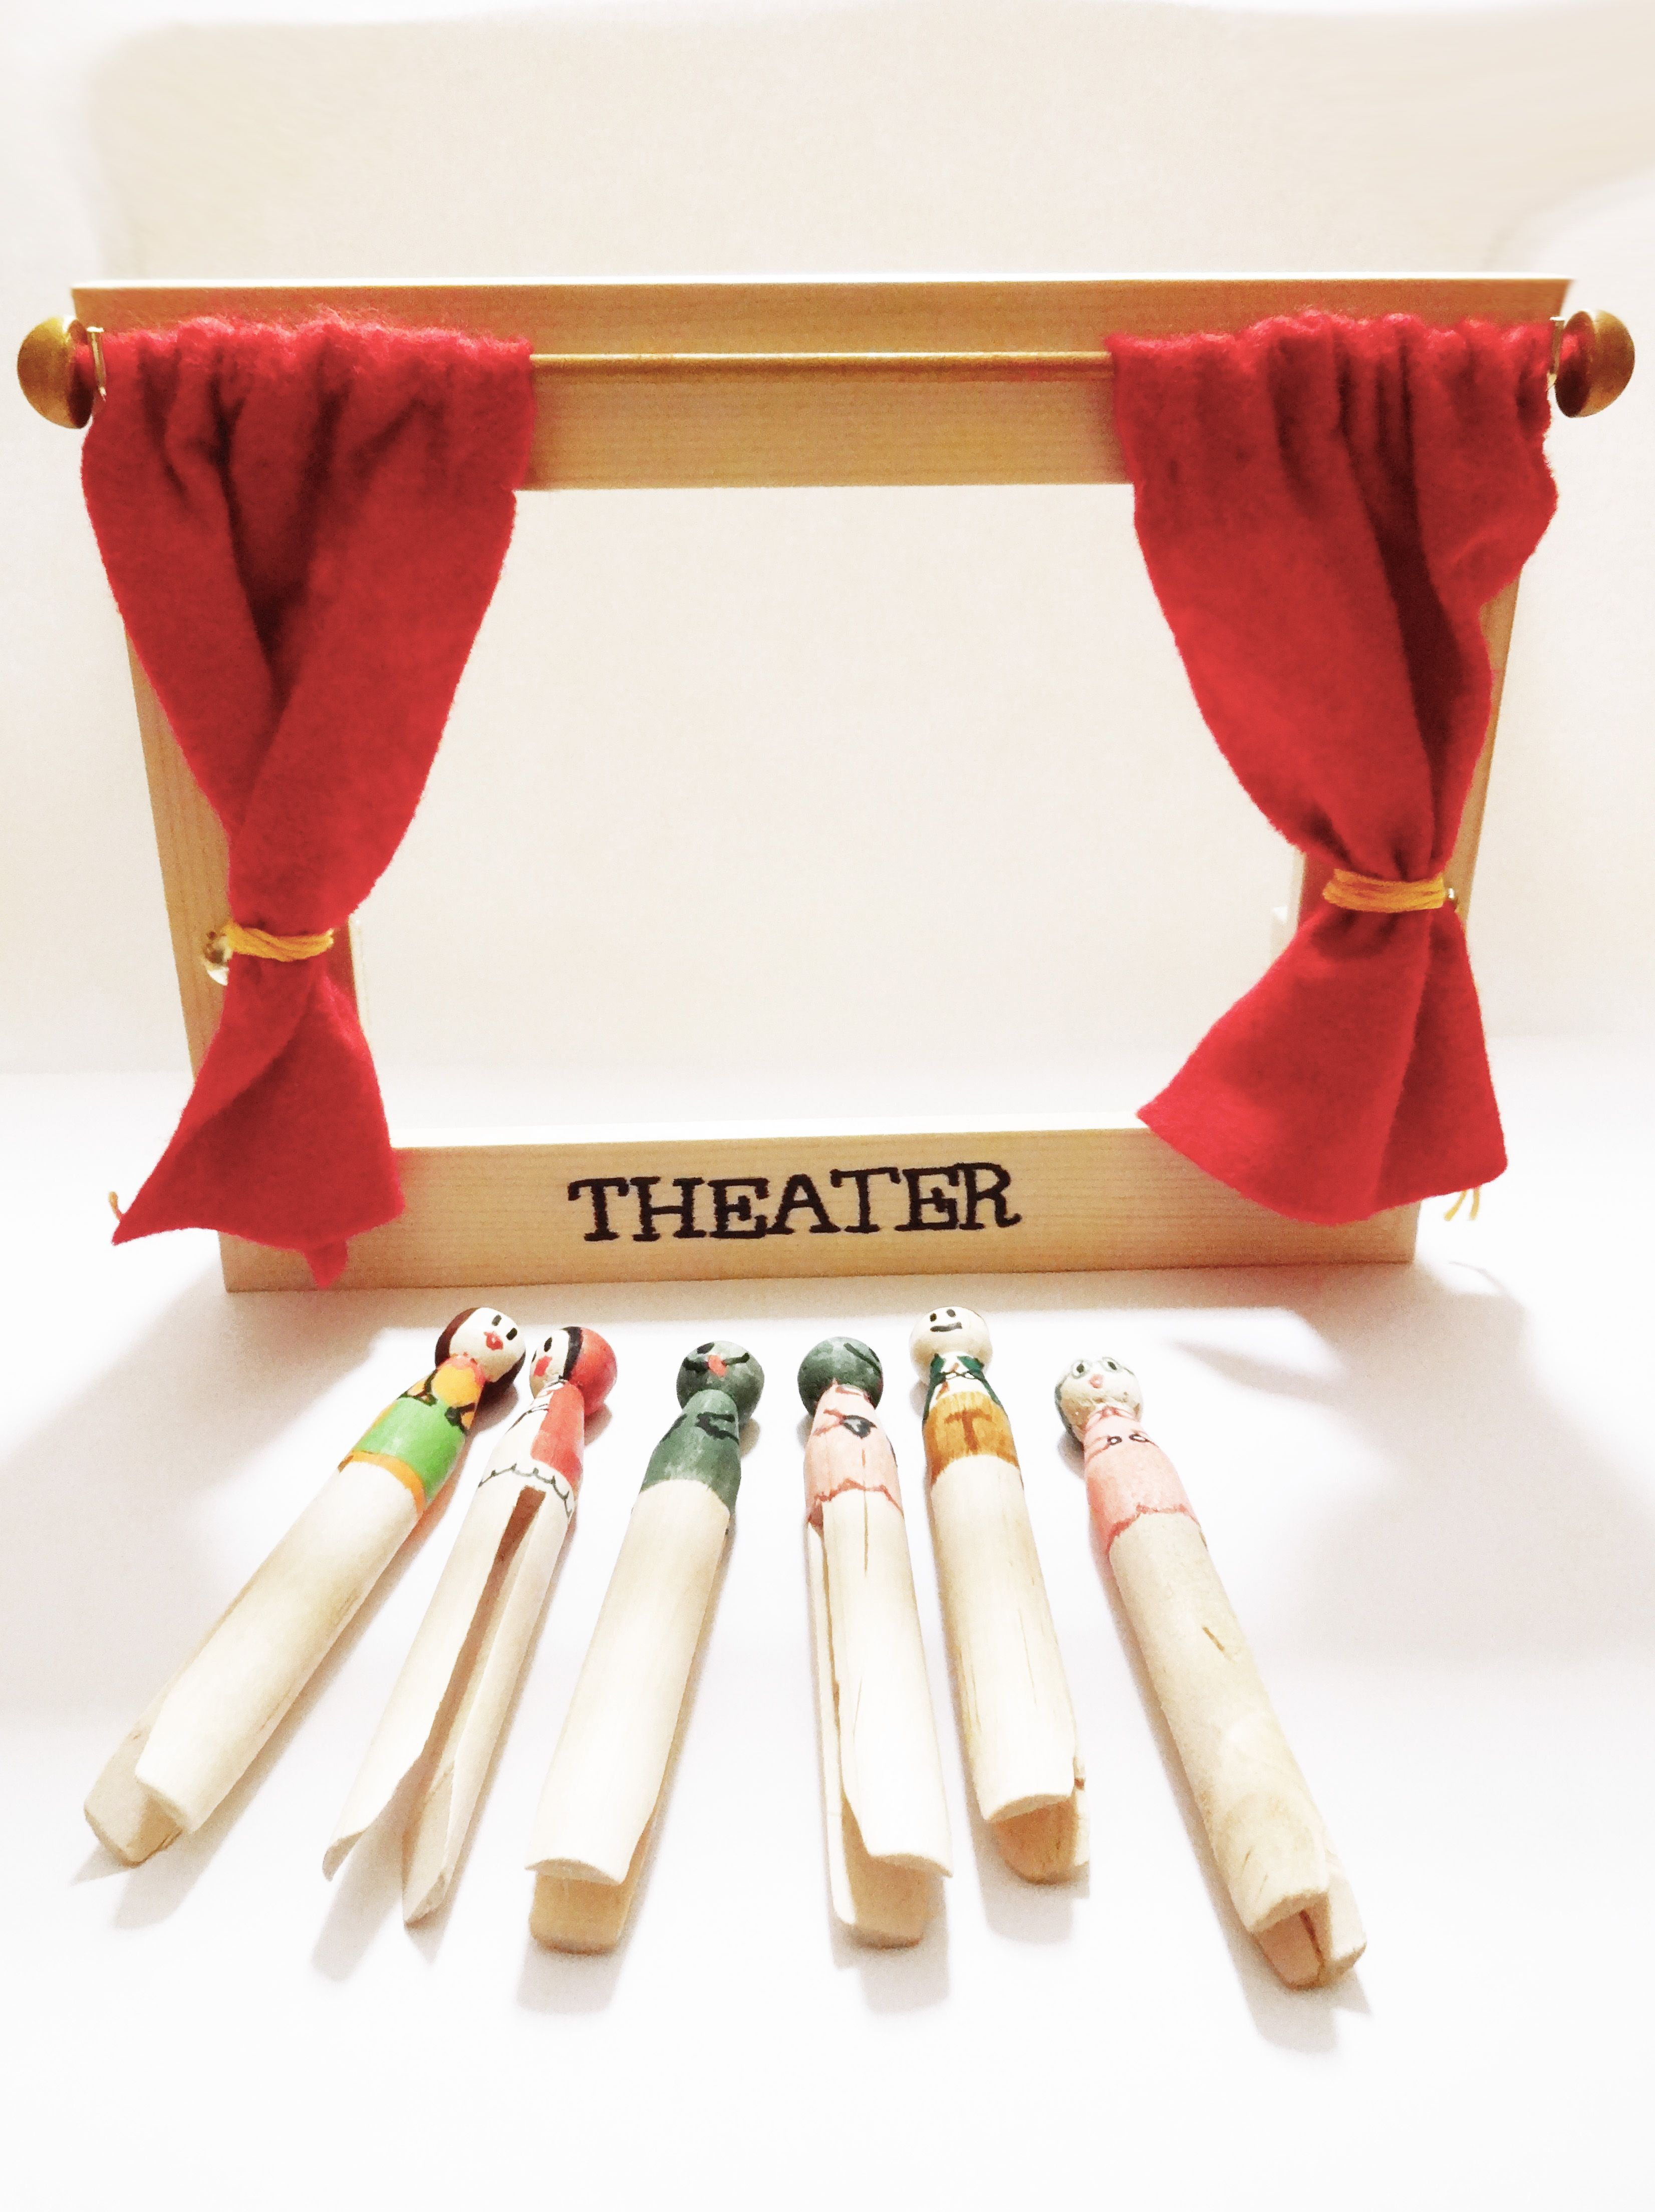 puppen theater geschenk pinterest puppen bastelei und puppentheater. Black Bedroom Furniture Sets. Home Design Ideas